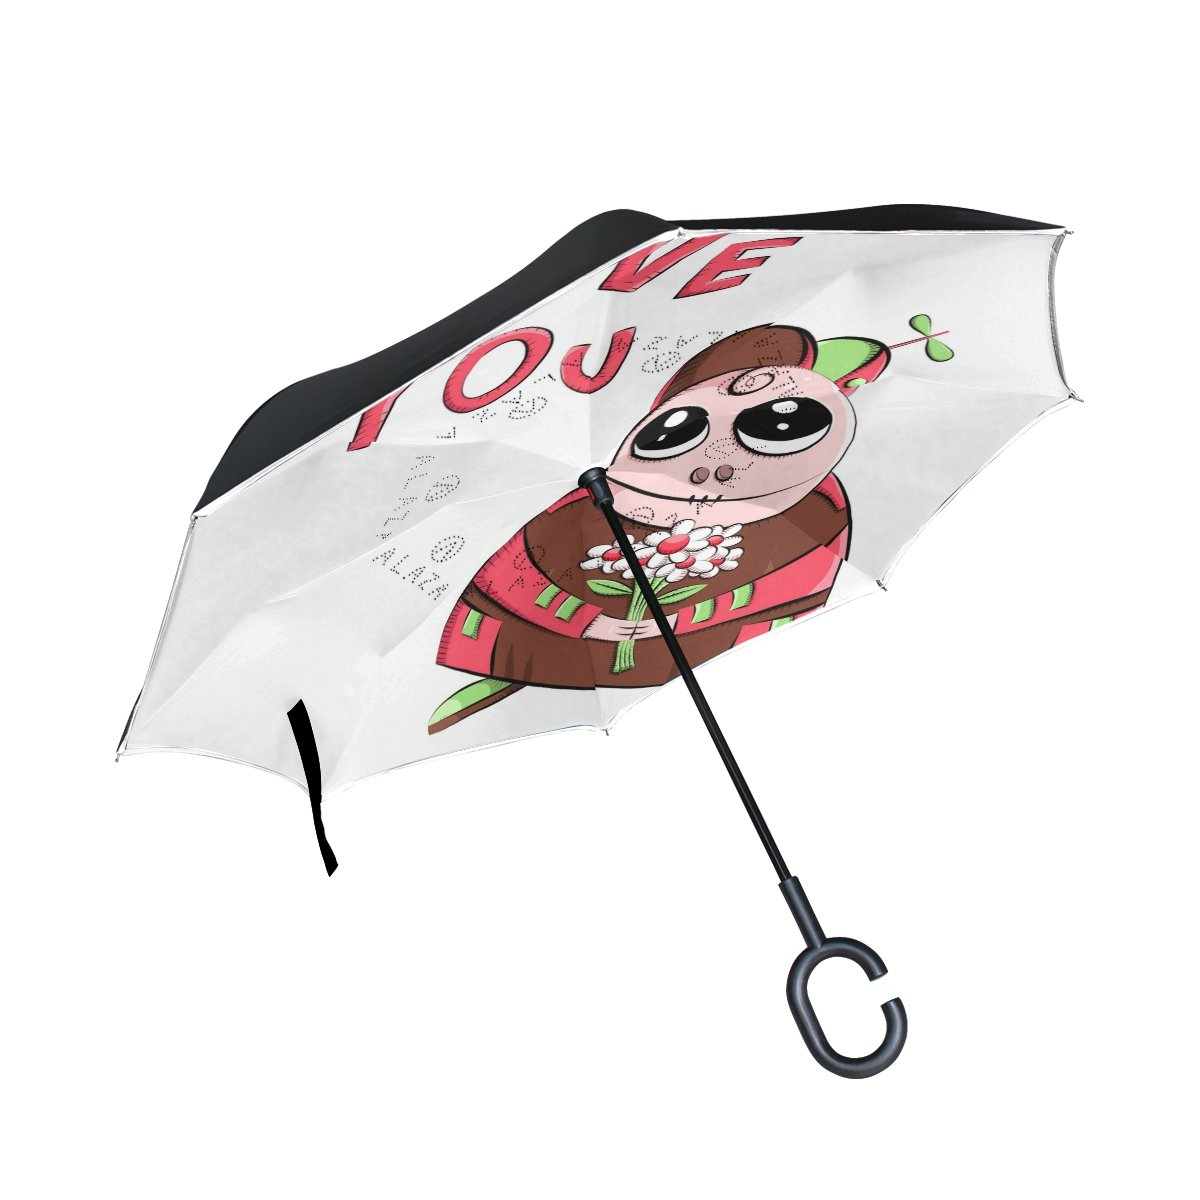 Amazon.com: Top Carpenter Double Layer Reverse Inverted Umbrellas Dachshund Sausage Dog Egg On Head With C-Shaped Handle for Car Outdoor: Sports & Outdoors